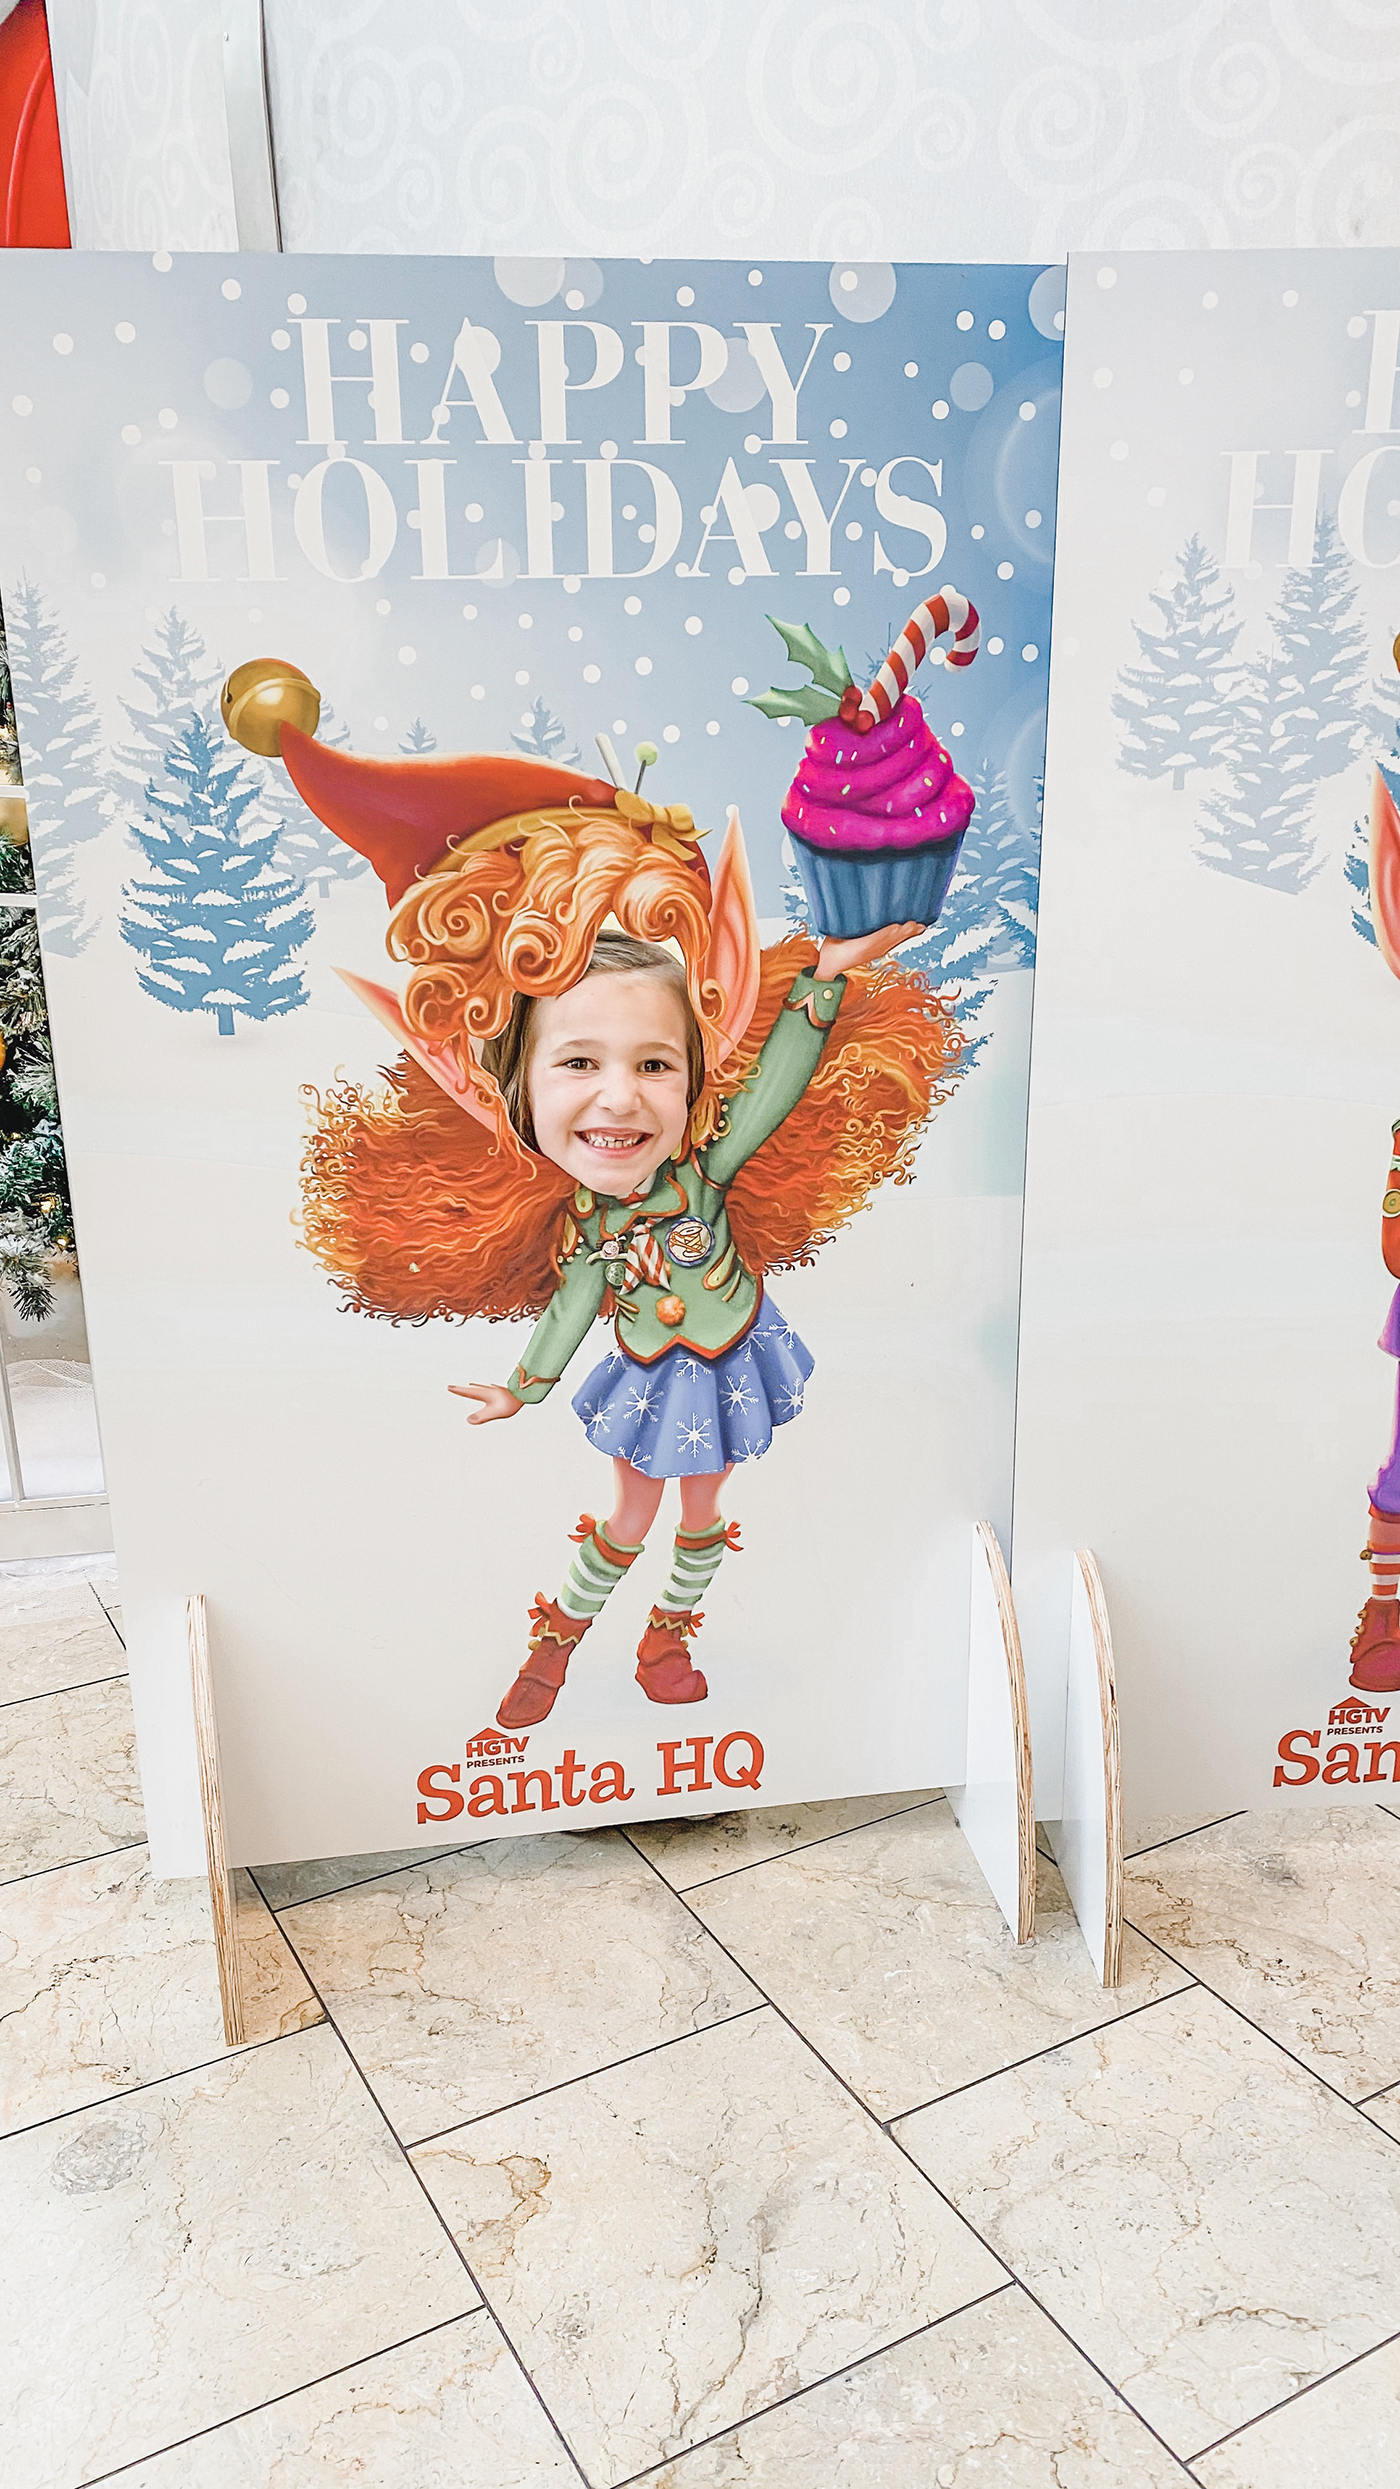 Little girl posting in head cutout of elf body